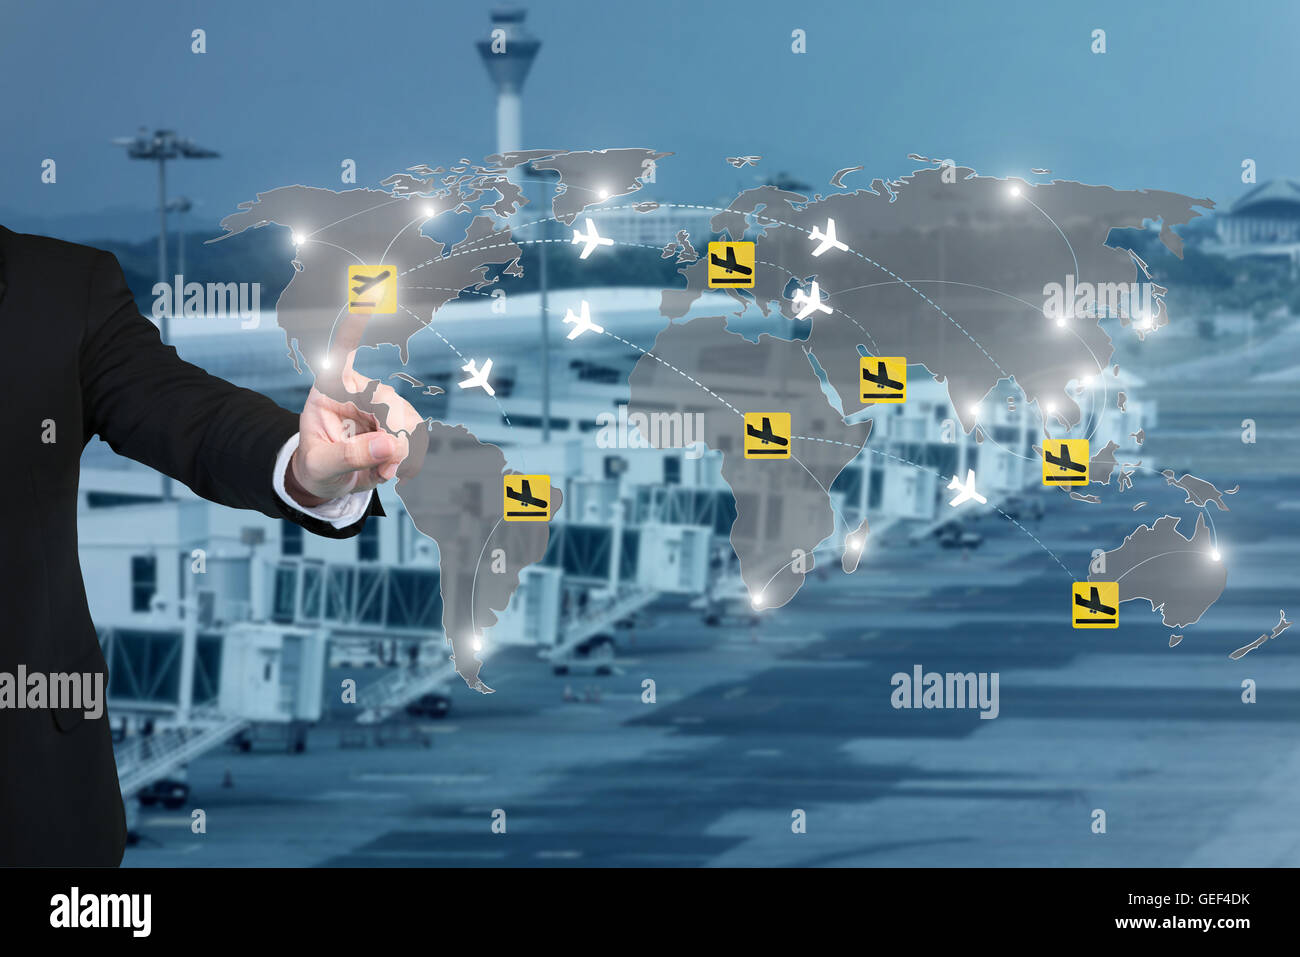 Businessman working with virtual interface to control connection networks of airplanes on their destination routes. - Stock Image